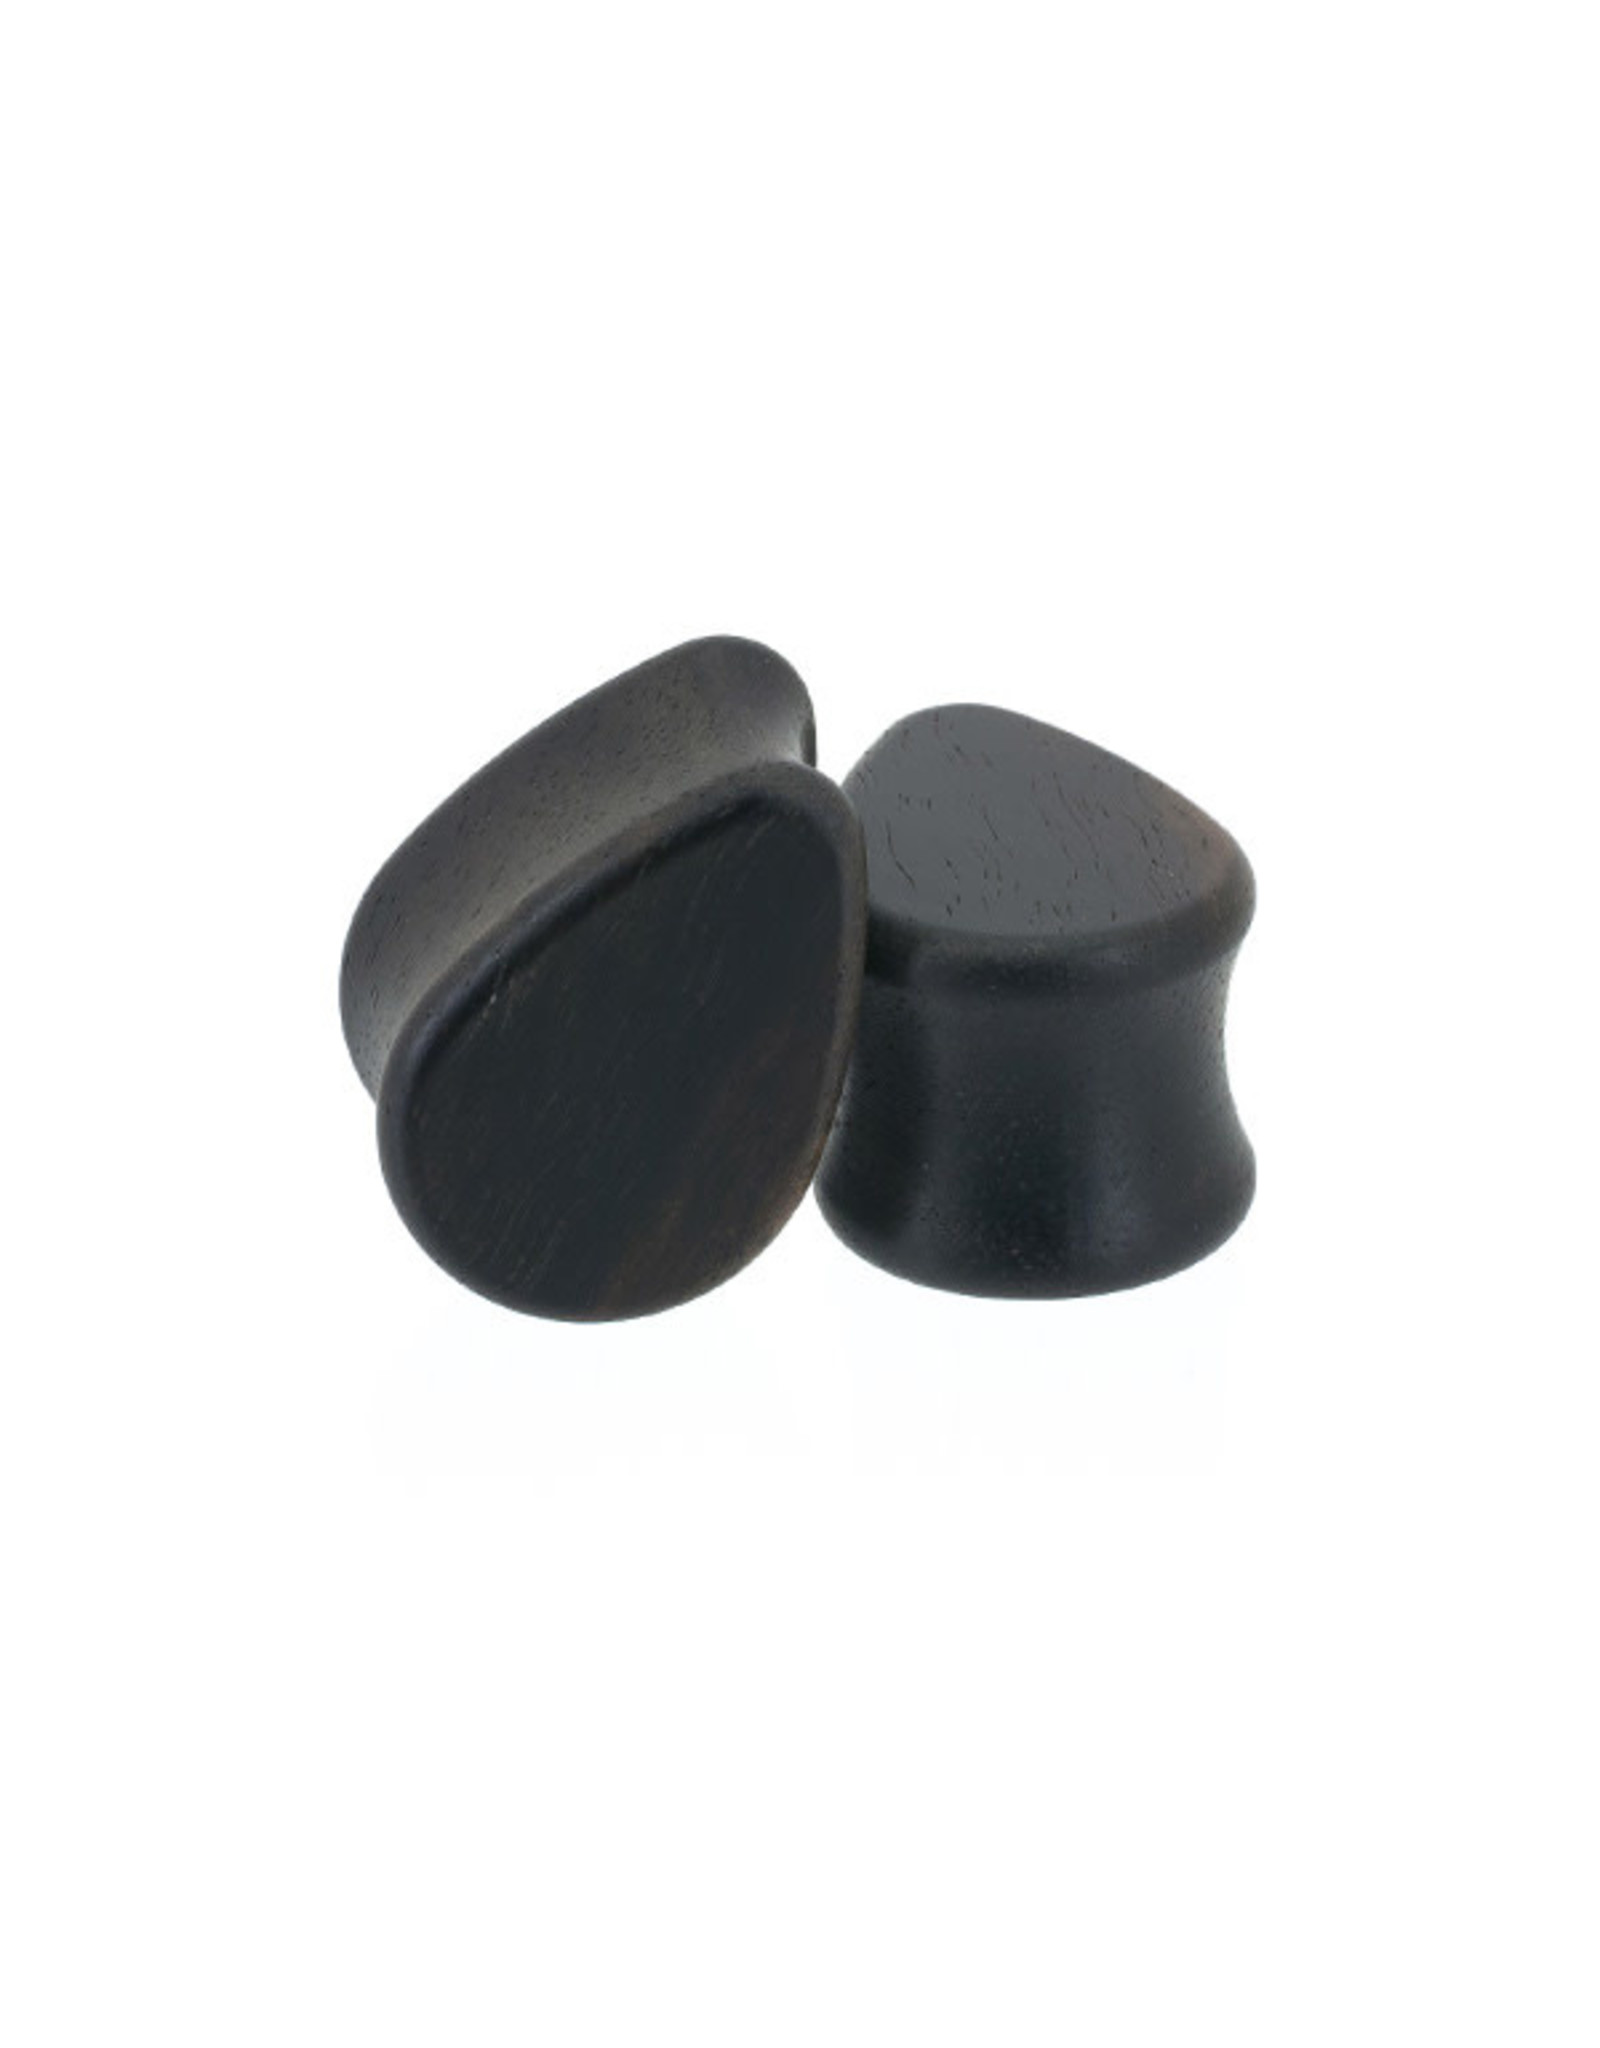 0g Ebony Wood Teardrops